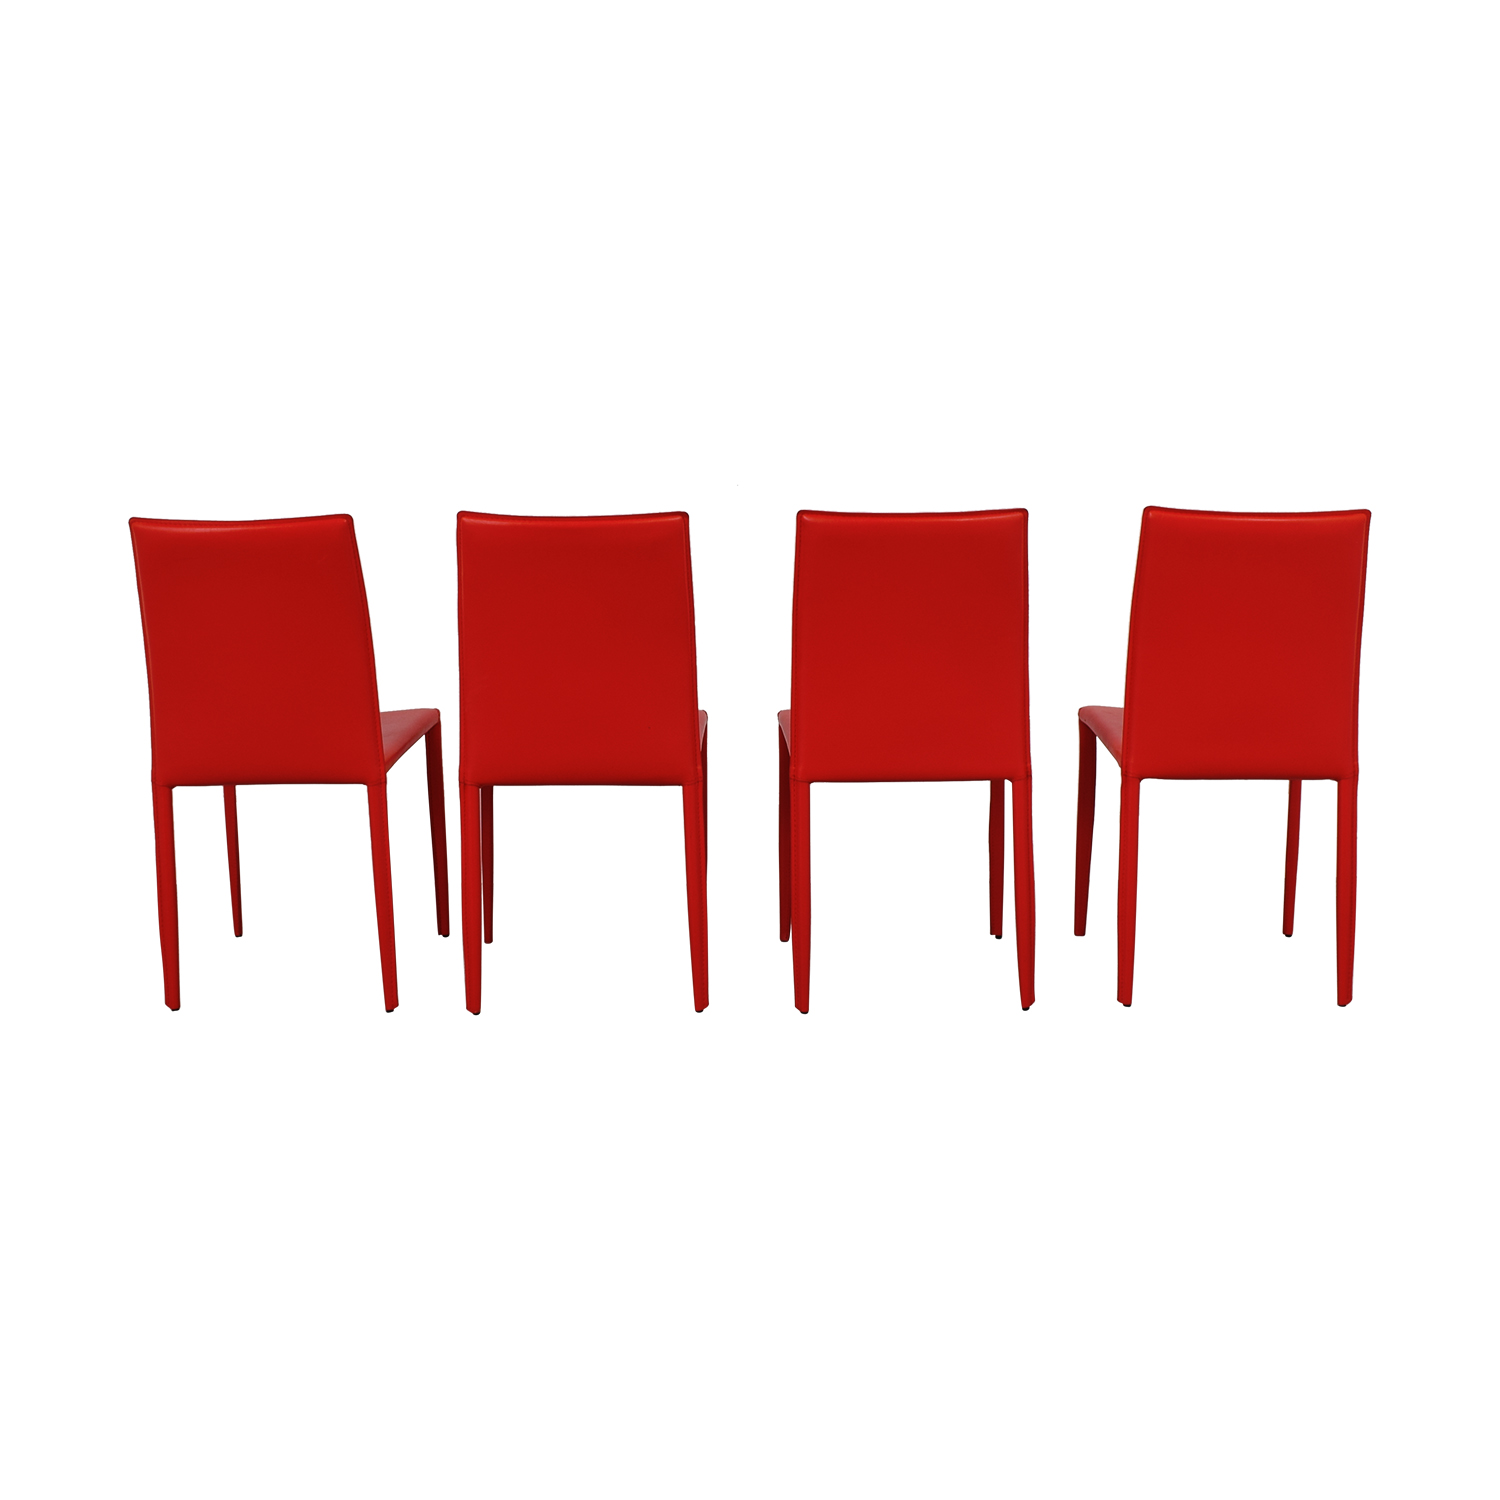 Safaviah Safaviah Red Leather Chairs coupon